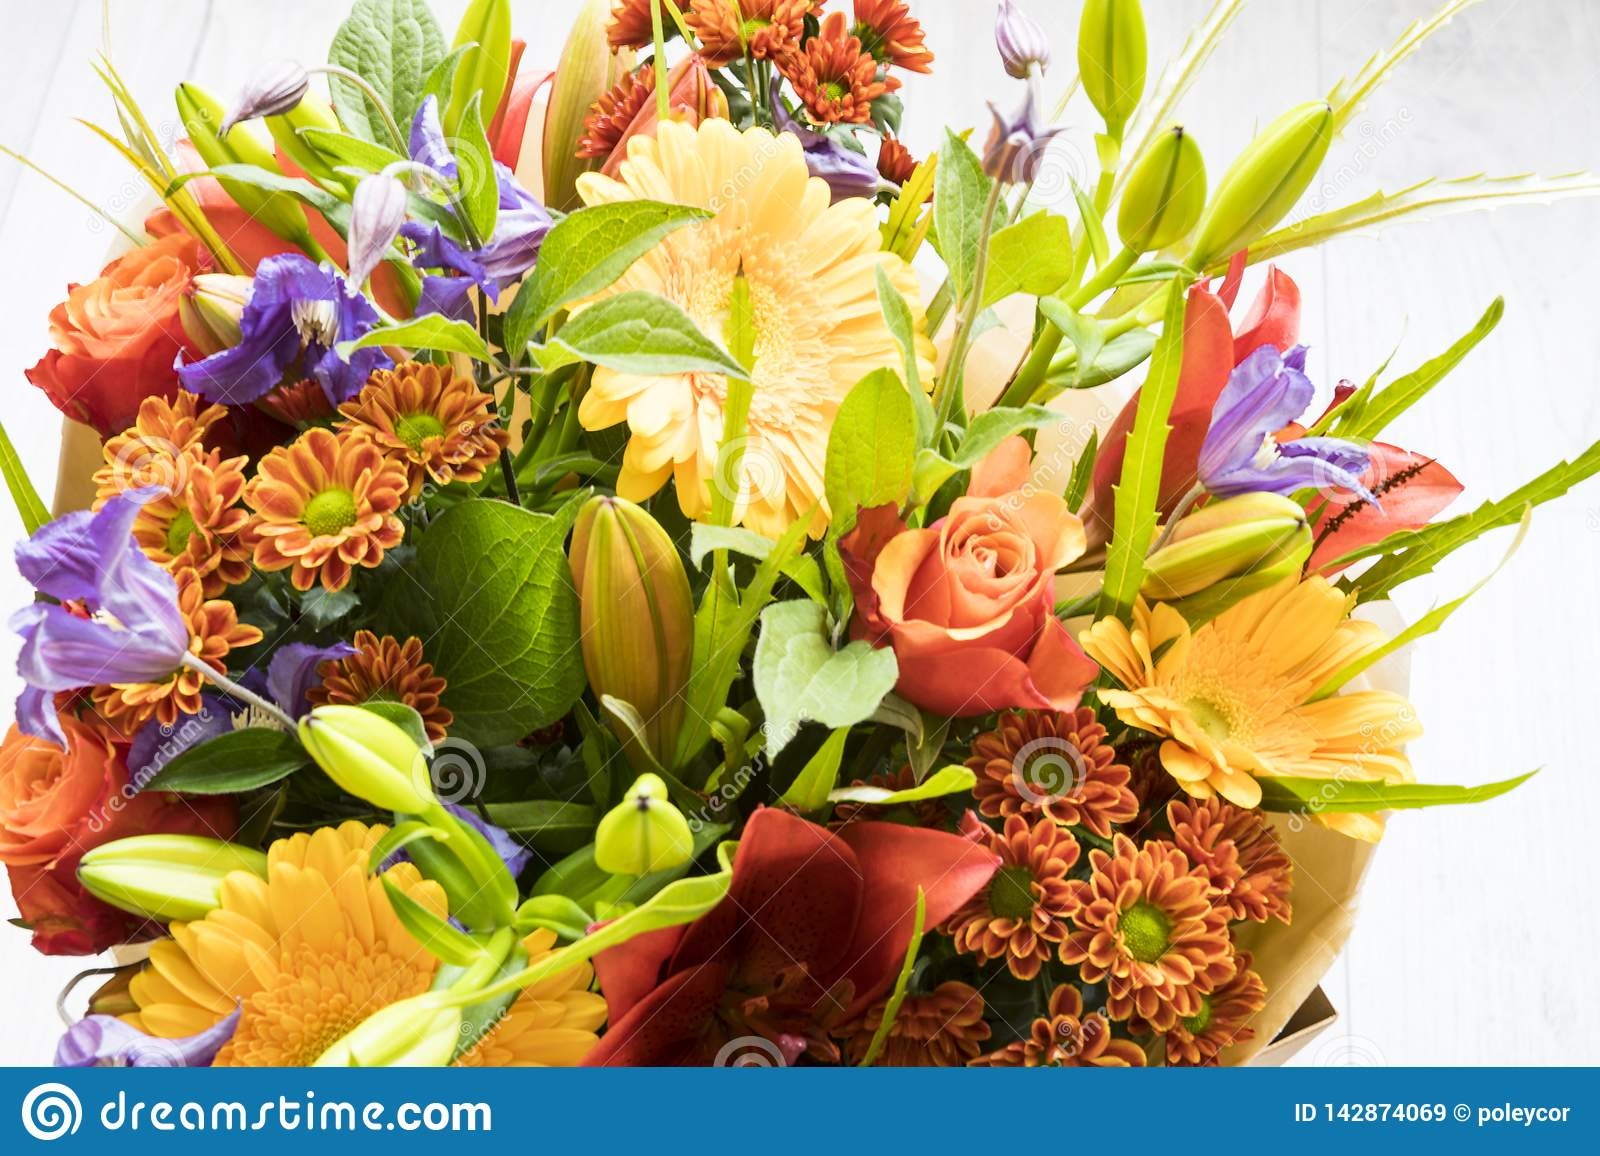 Bouquet with roses, red lily,  gerbera, dahlia and leaves.